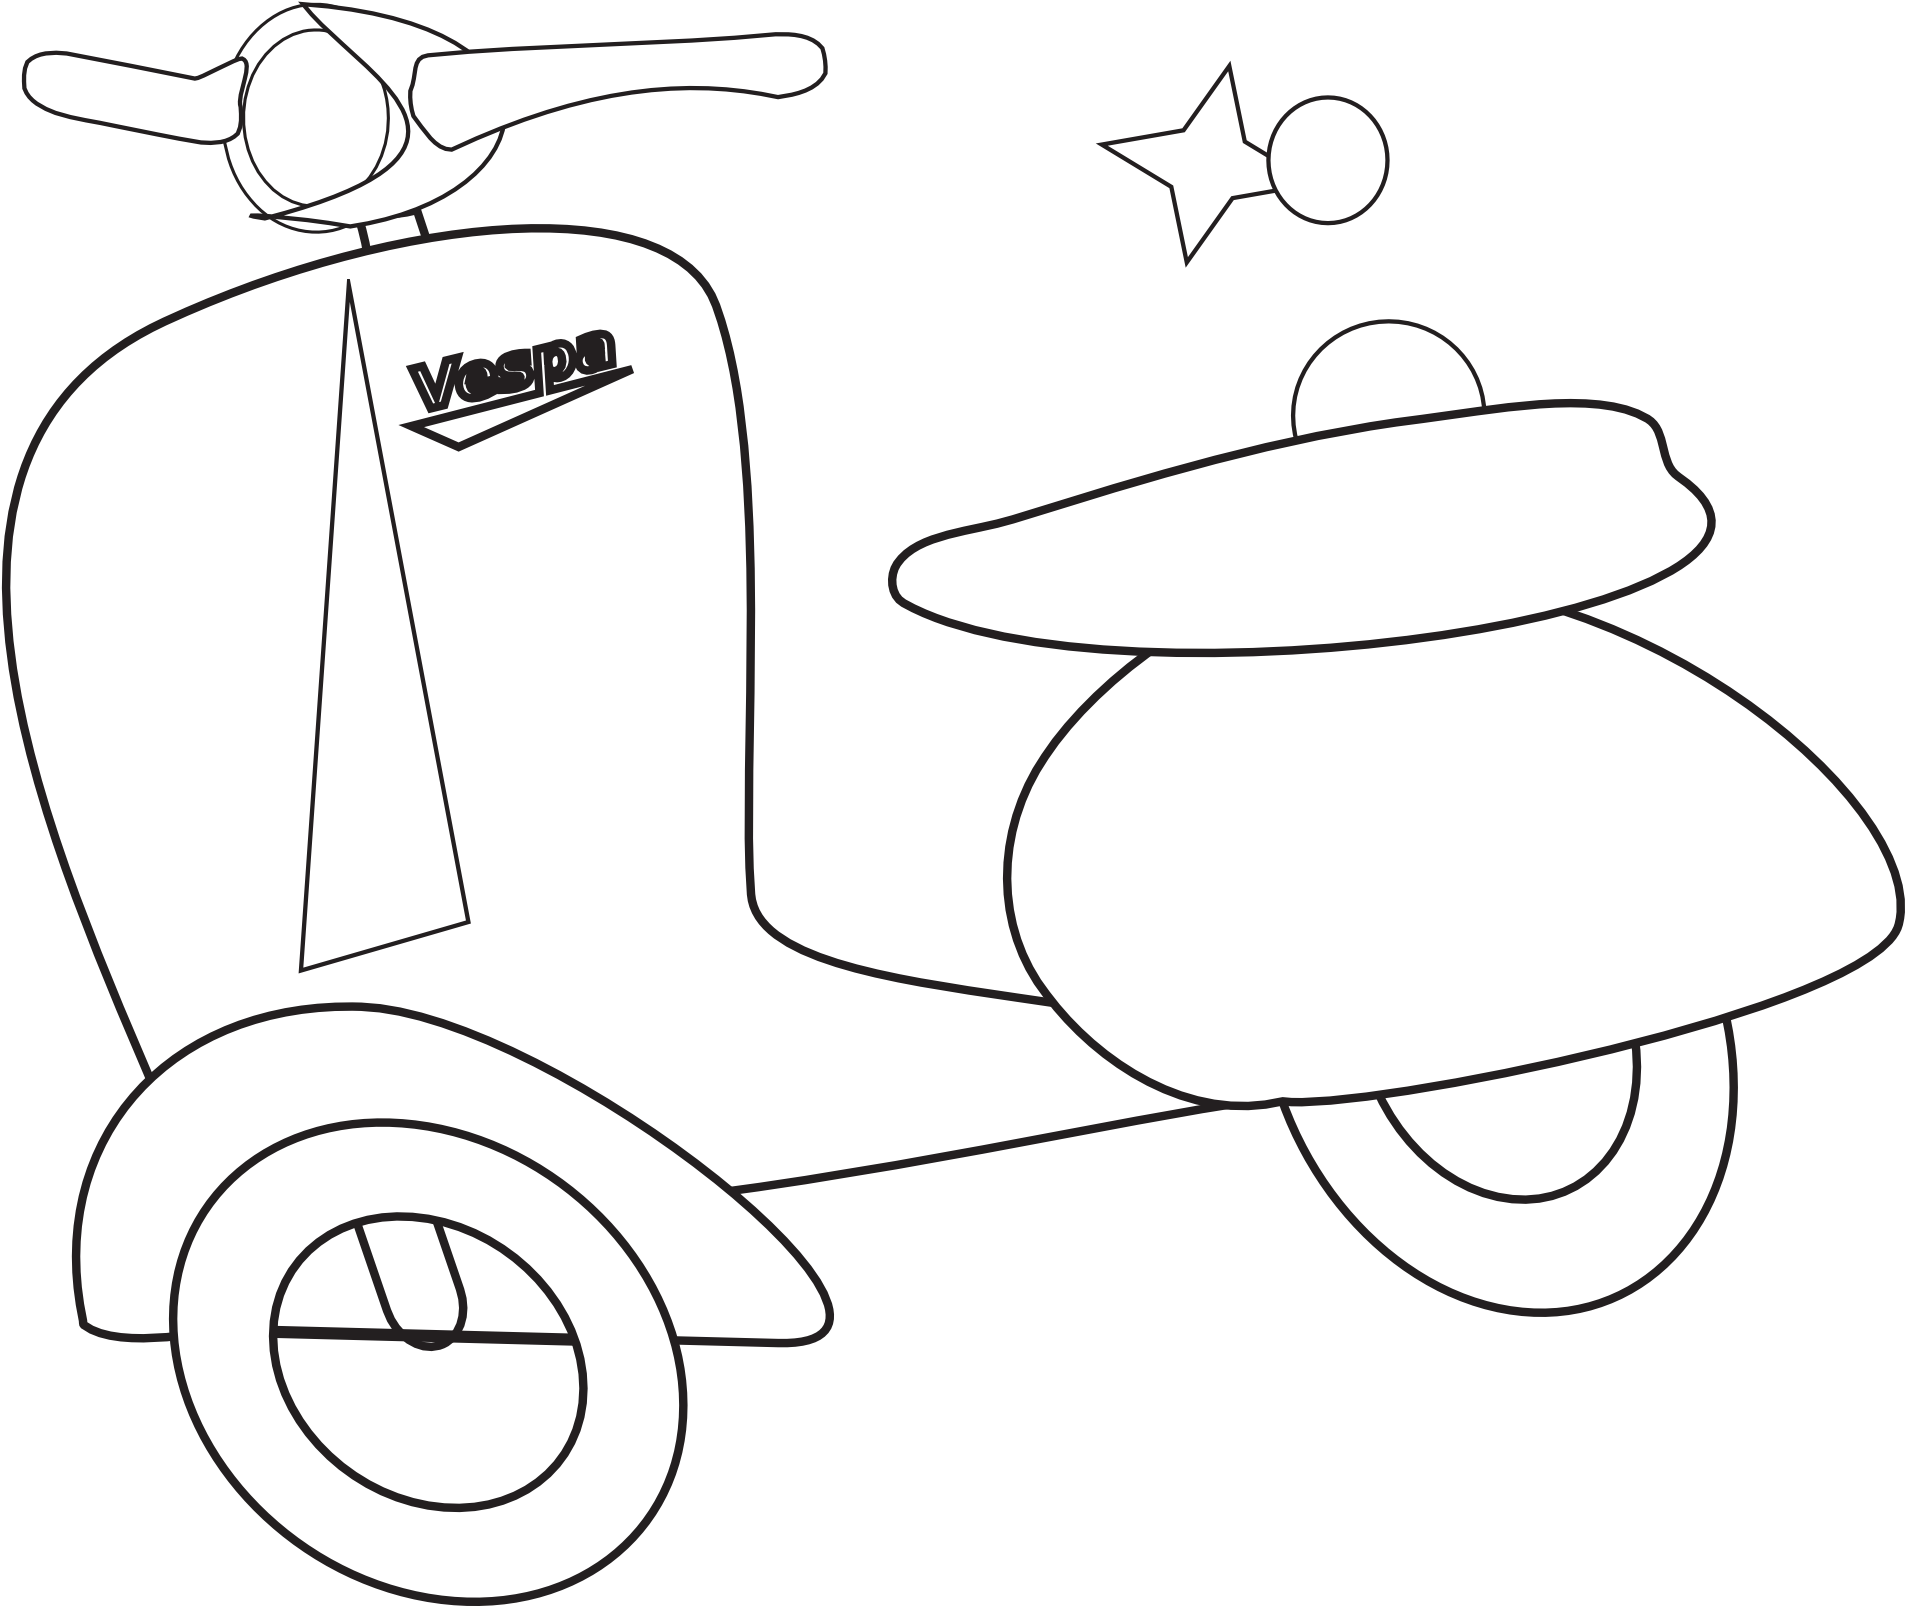 Download Clip Art Vespa Black White Line Art Coloring Line Art Vespa White Png Image With No Background Pngkey Com